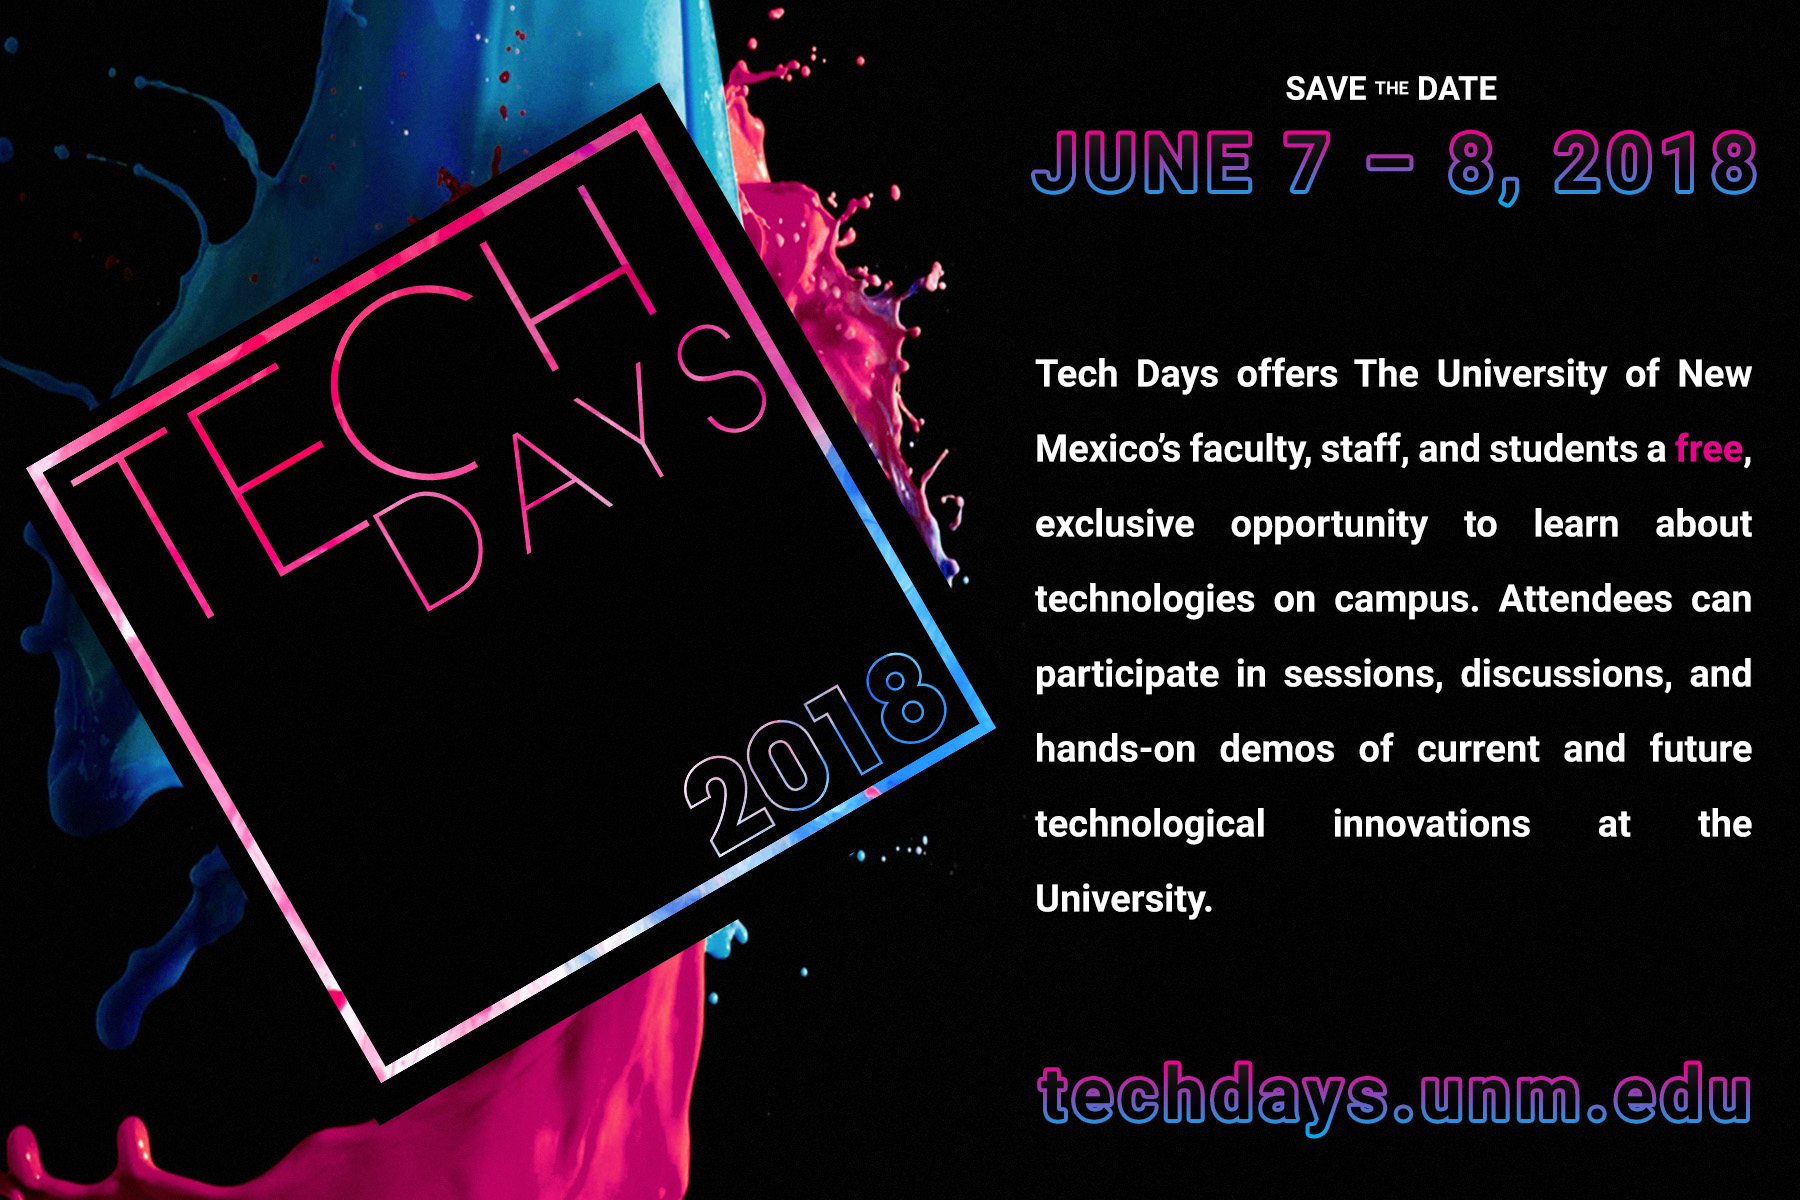 Tech Days 2018 - Save the Date